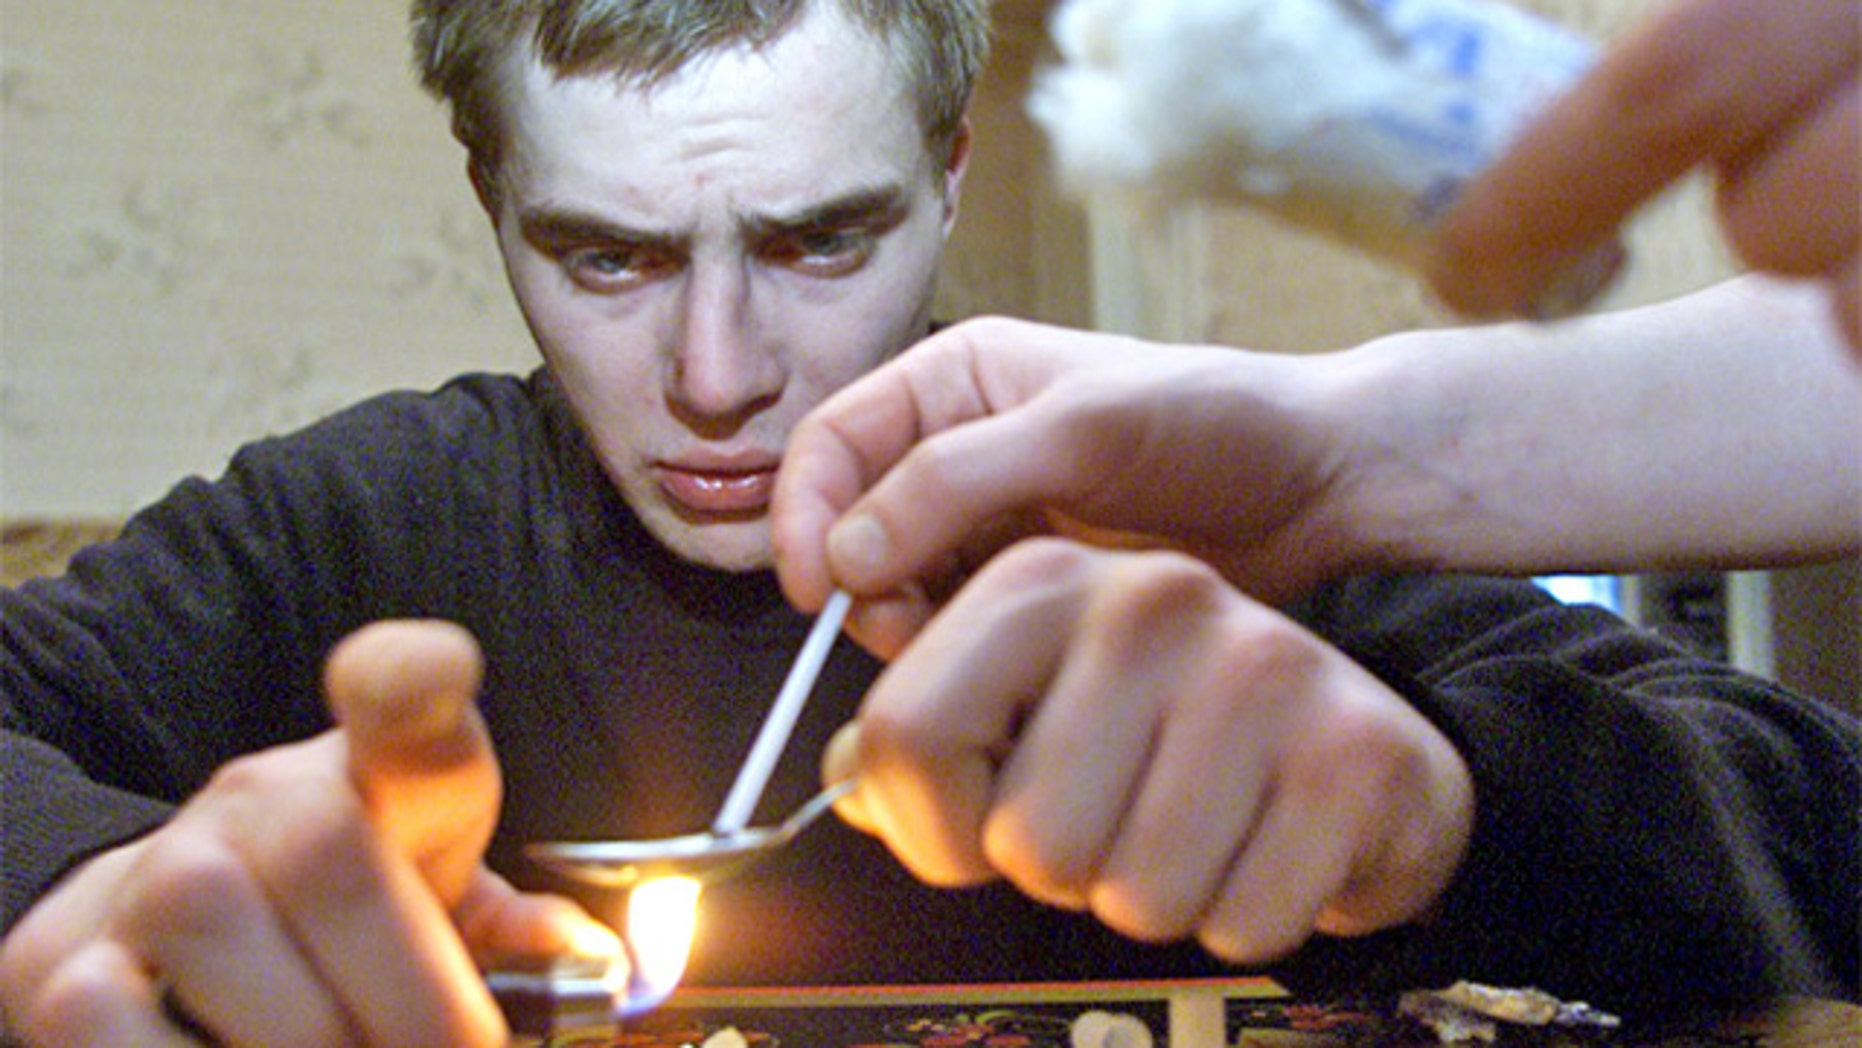 A man prepares heroin in Zhukovsky, Russia, near Moscow. To produce krokodil, which has a comparable effect to heroin but is much cheaper to make, users mix codeine with gasoline, paint thinner, iodine, hydrochloric acid and red phosphorous.